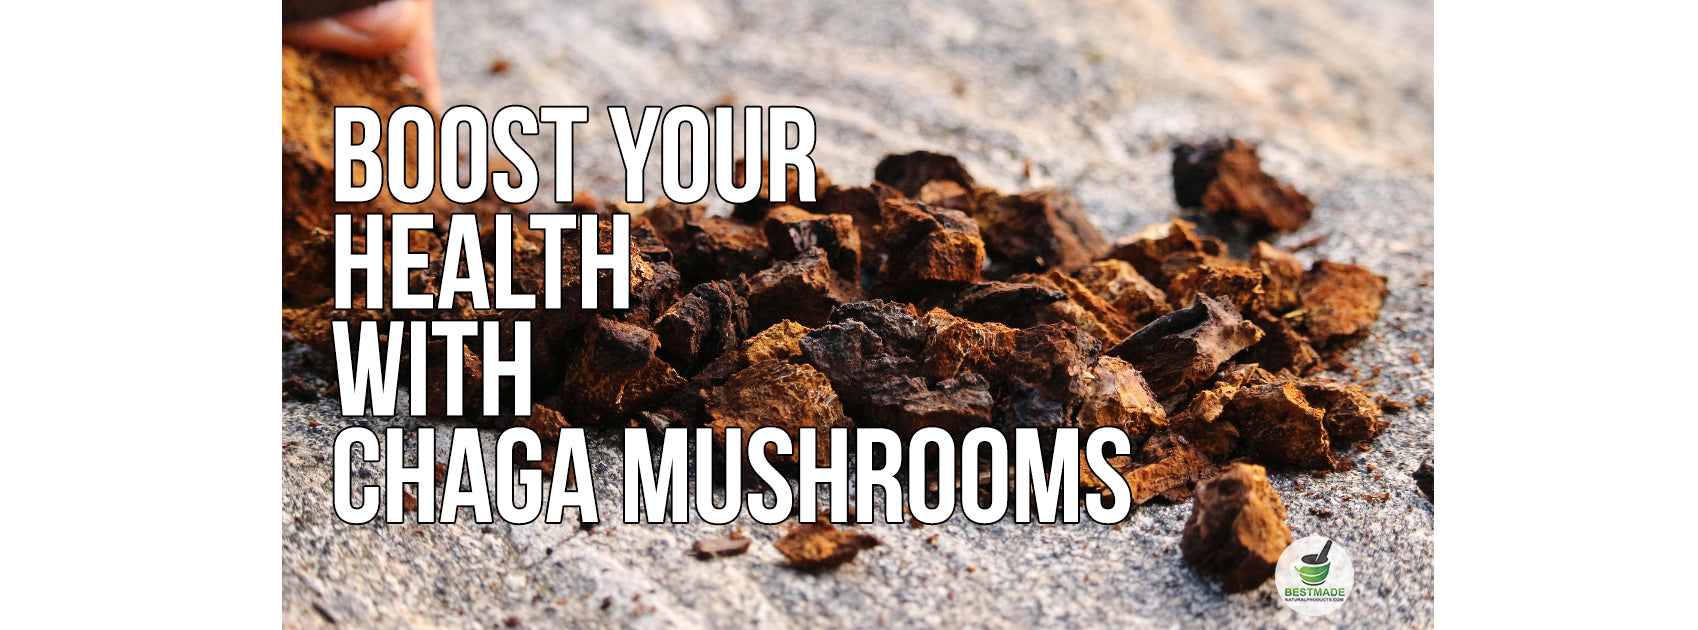 Boost Your Health With Chaga Mushrooms